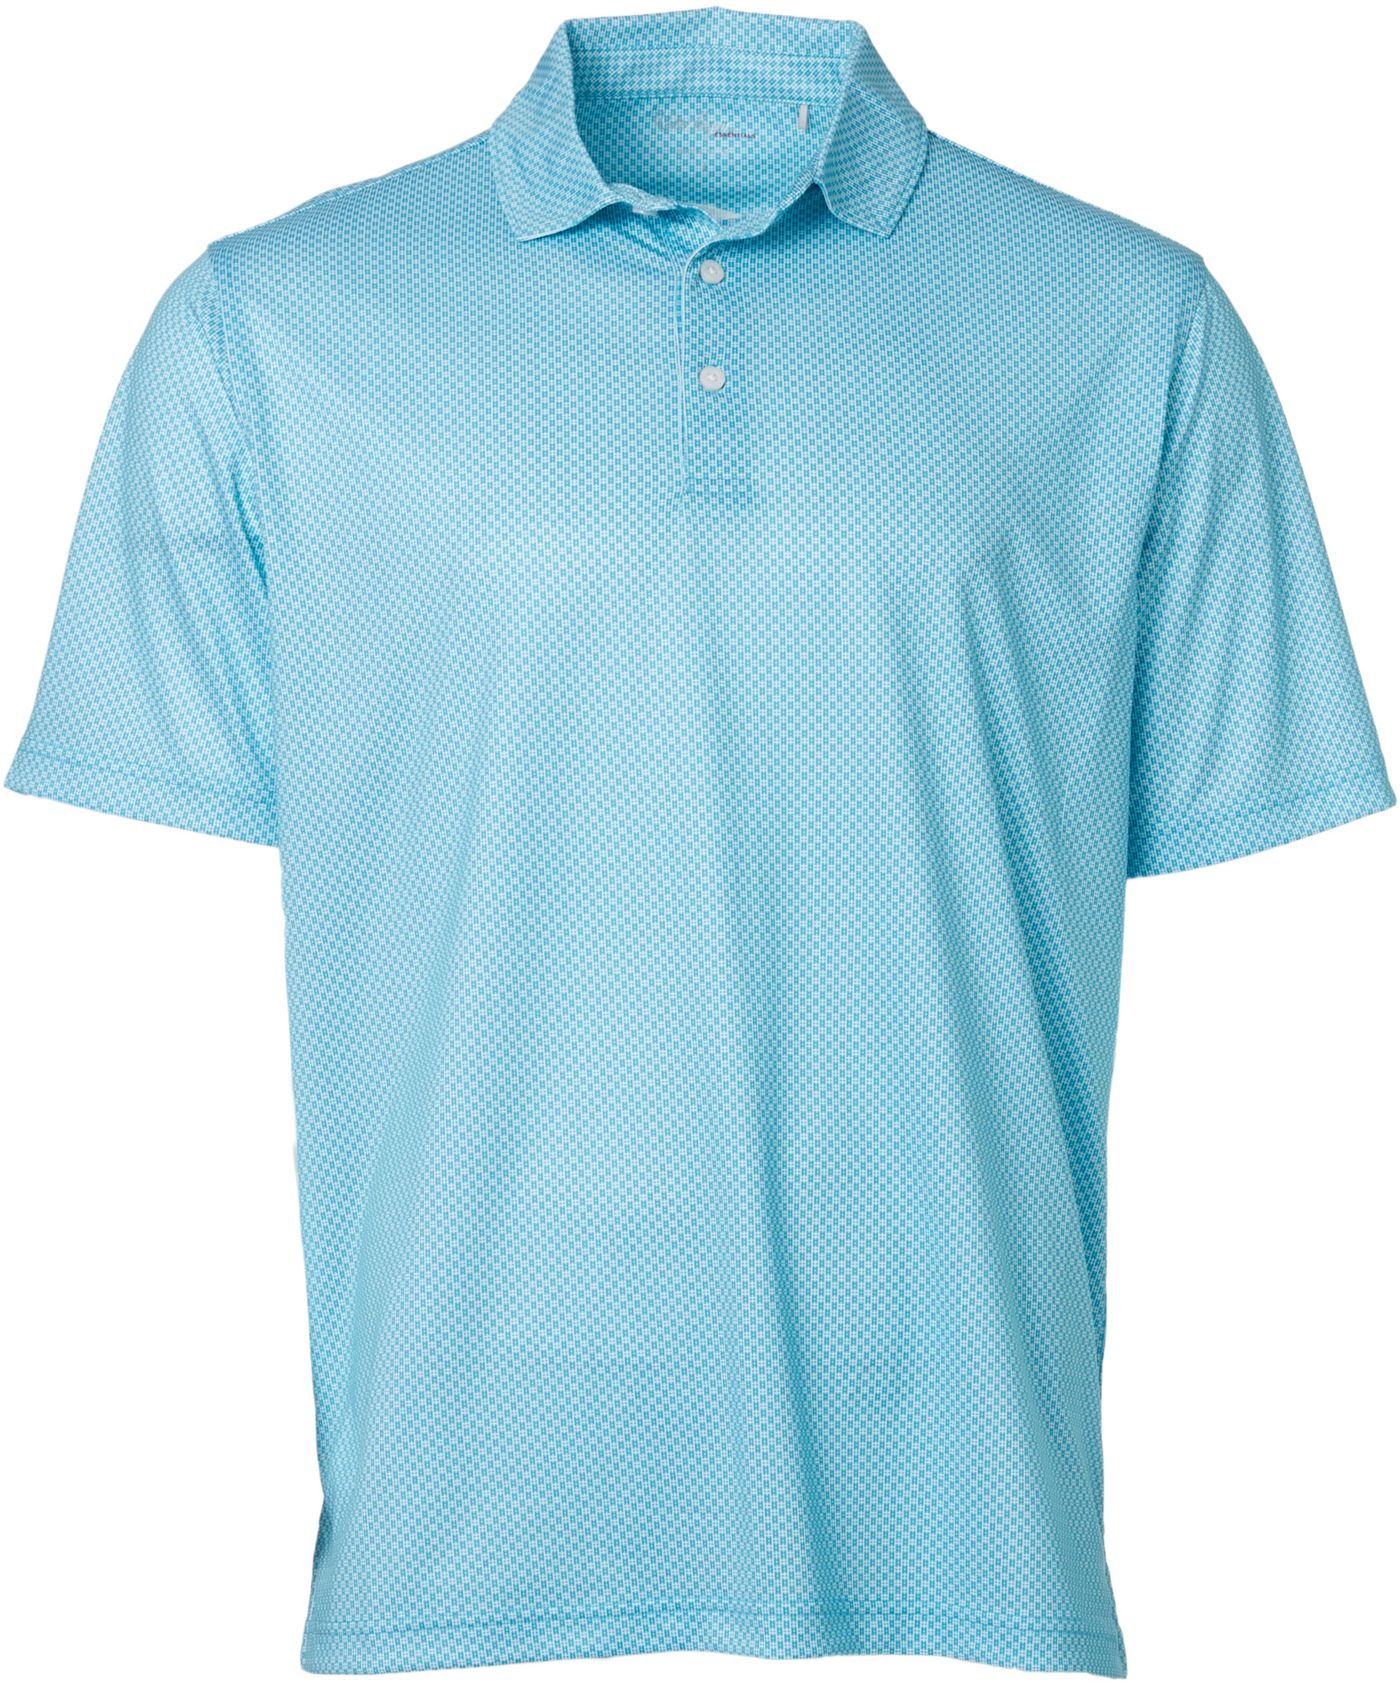 Walter Hagen Essentials Ladder Print Polo